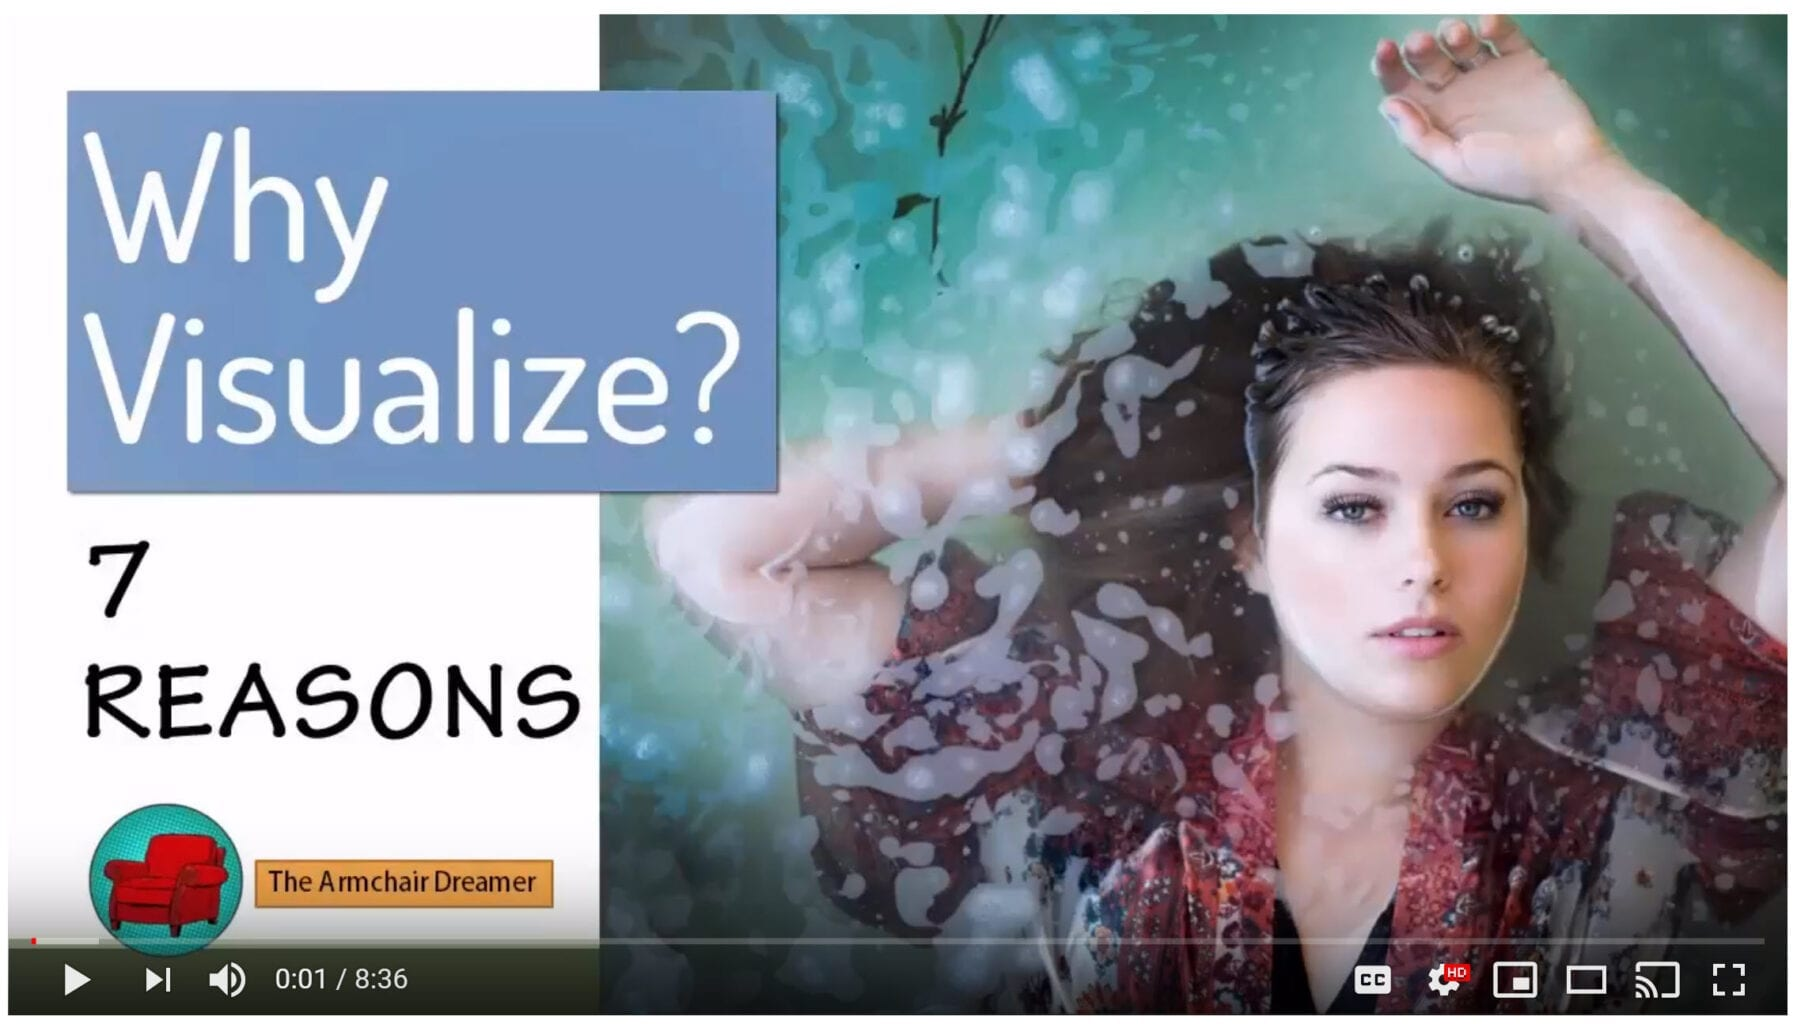 Why Should You Visualize? – [Visualize Video]